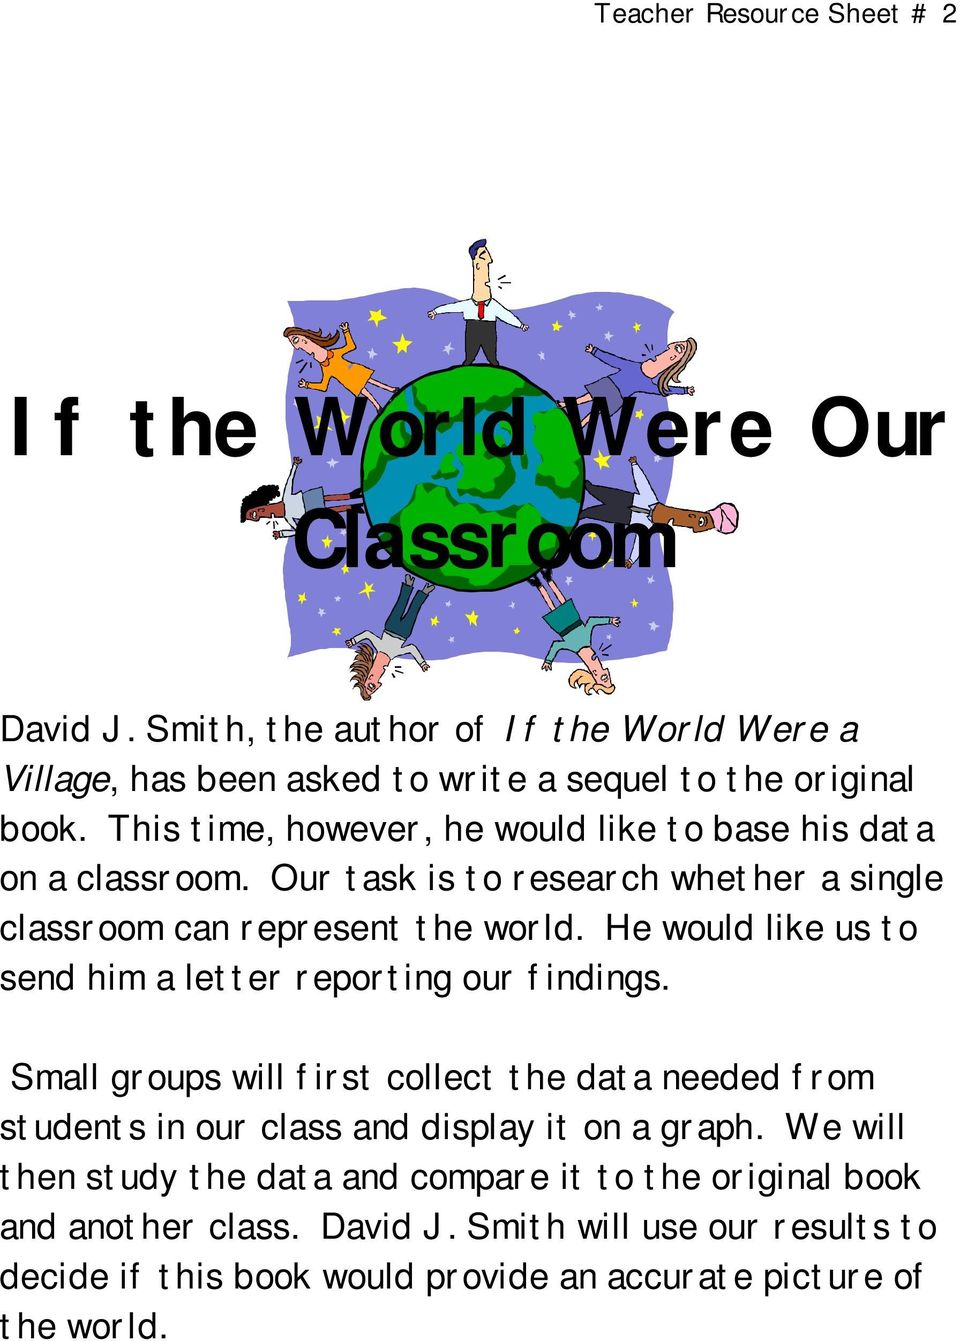 This time, however, he would like to base his data on a classroom. Our task is to research whether a single classroom can represent the world.